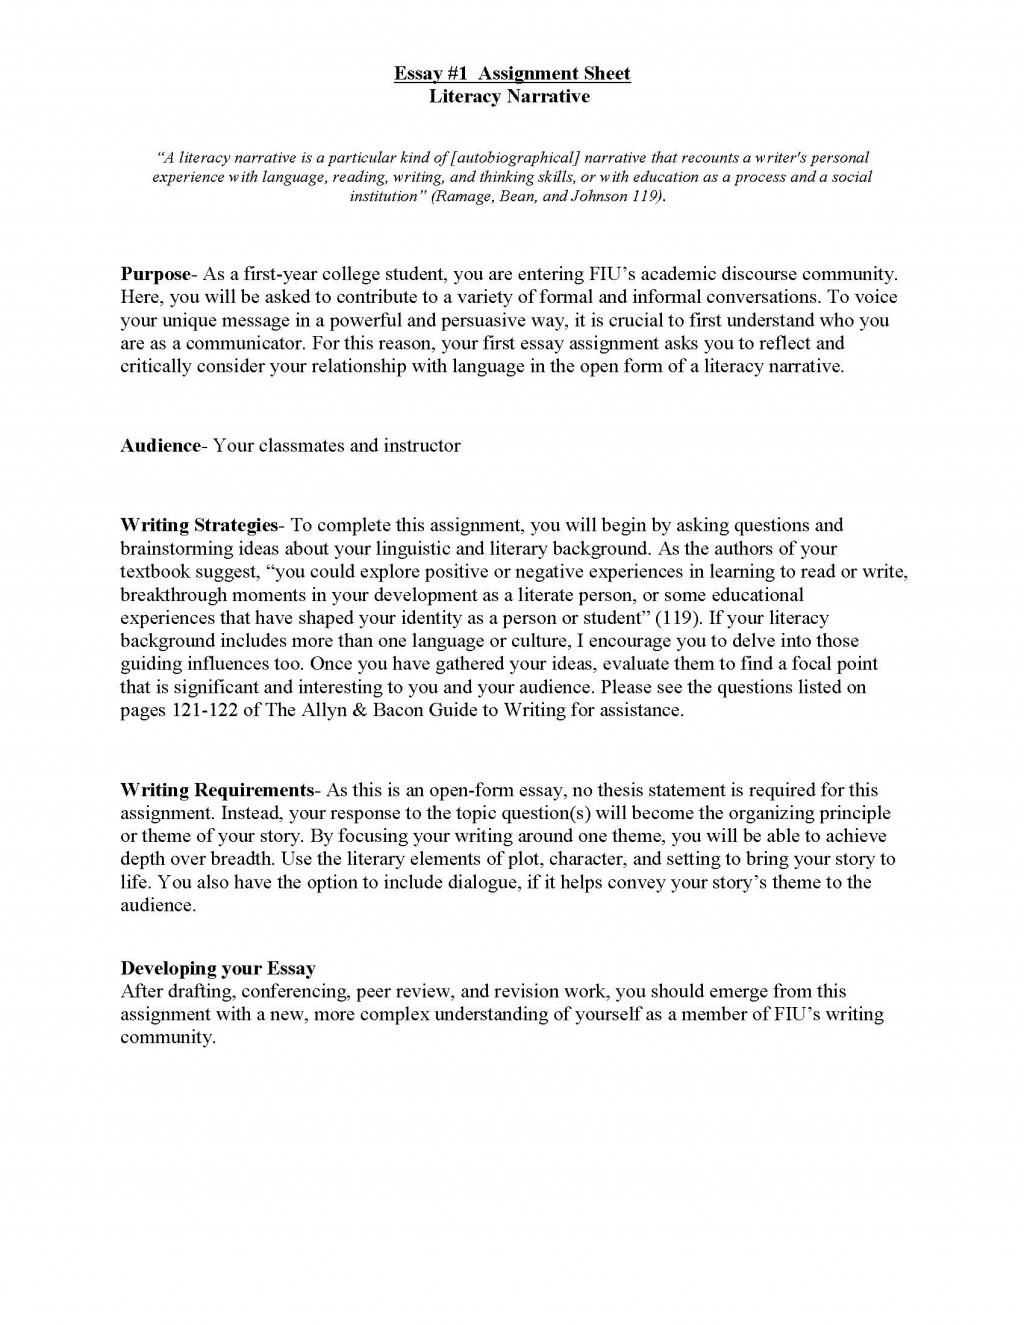 020 Literacy Narrative Unit Assignment Spring 2012 Page 1 Essay Example Fearsome Essays About Family Topics For O Levels Personal Traveling Large